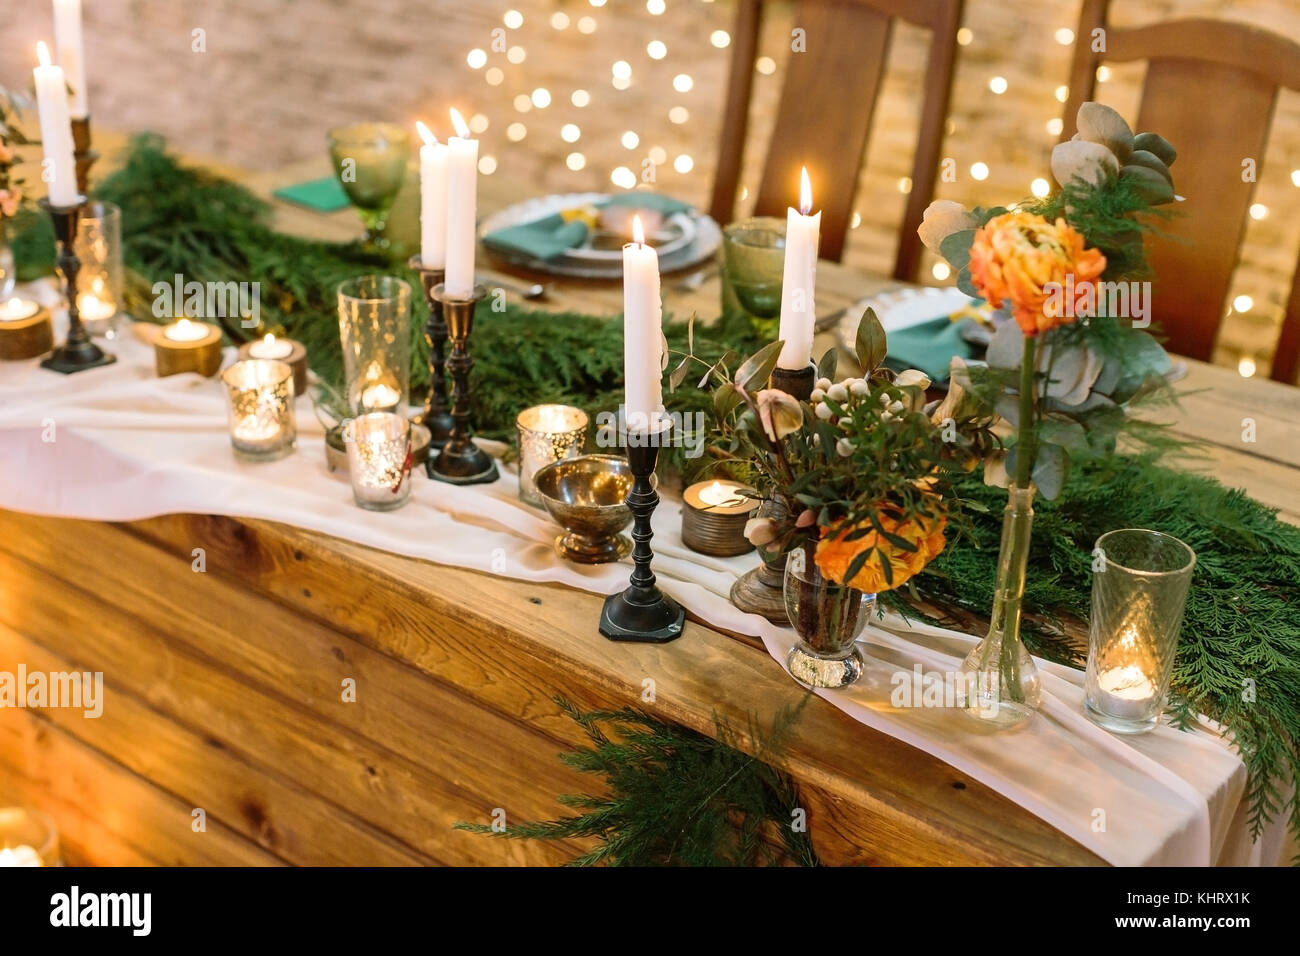 cosiness, celebration, silverware concept. lots of twinkle lights and burning candles illuminate decorated table - Stock Image